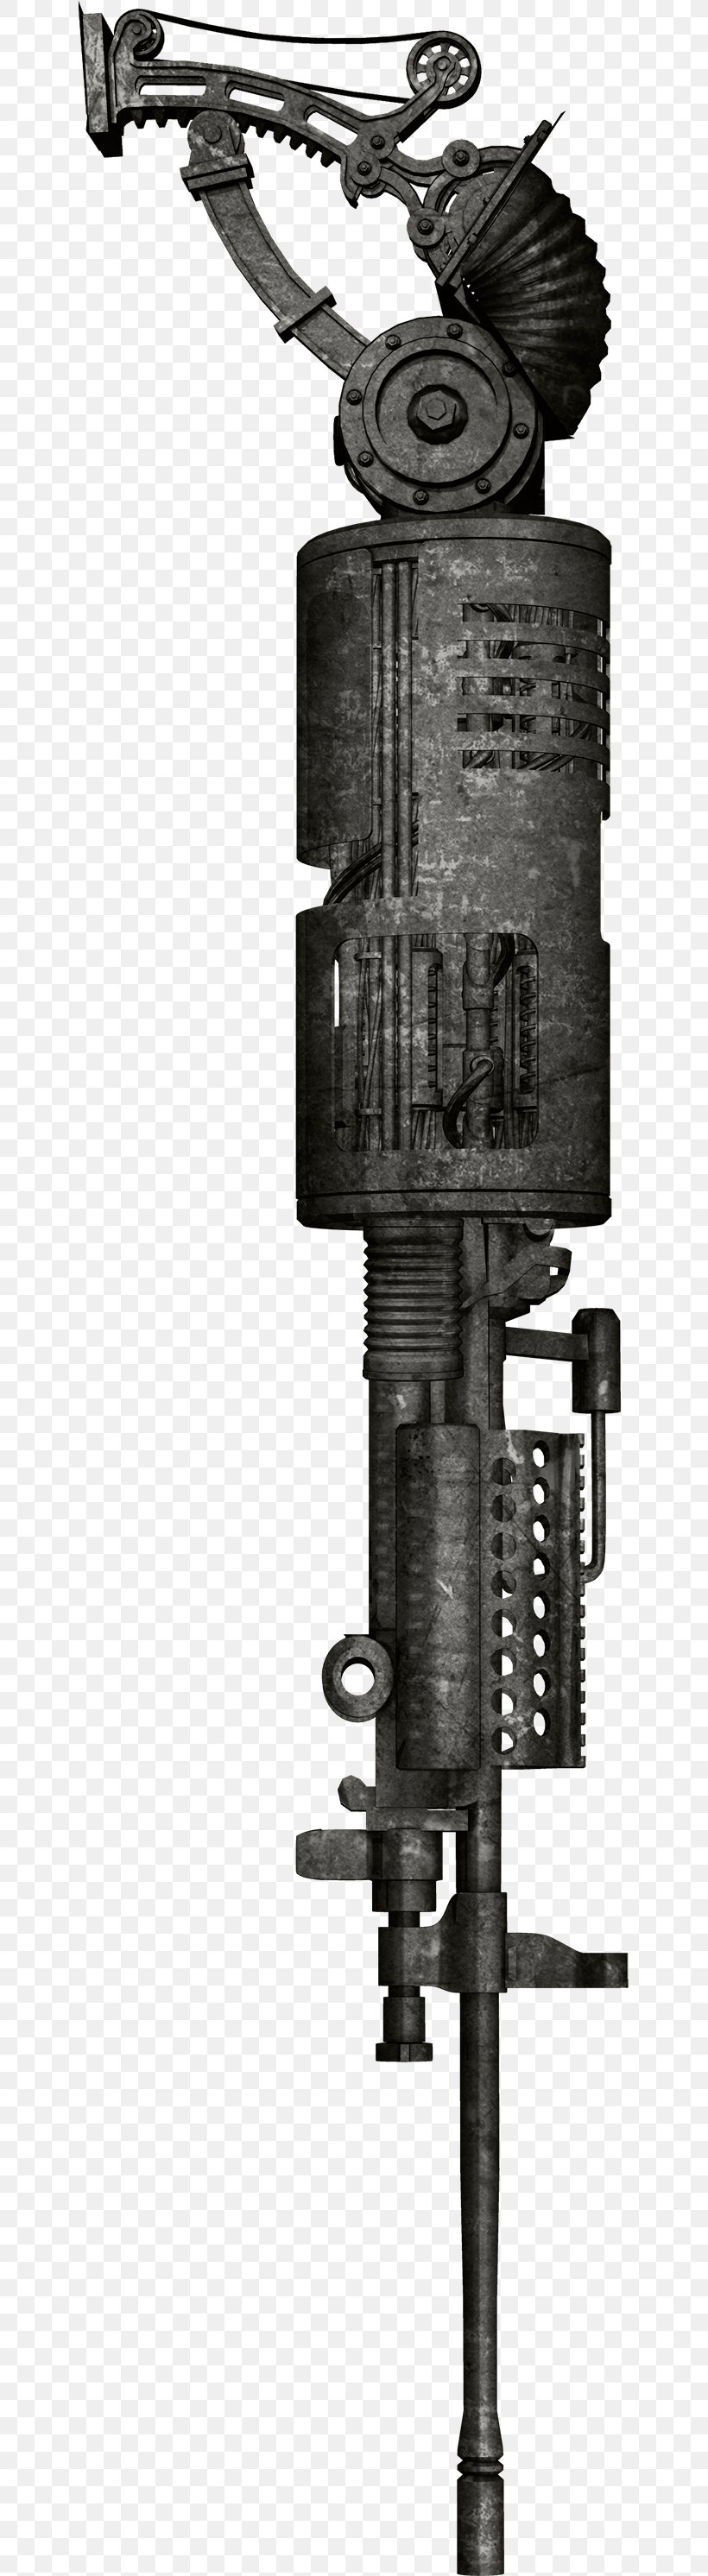 Industrial Revolution Steam Engine Machine, PNG, 637x2984px, Industrial Revolution, Black And White, Computer Numerical Control, Engine, Hardware Accessory Download Free